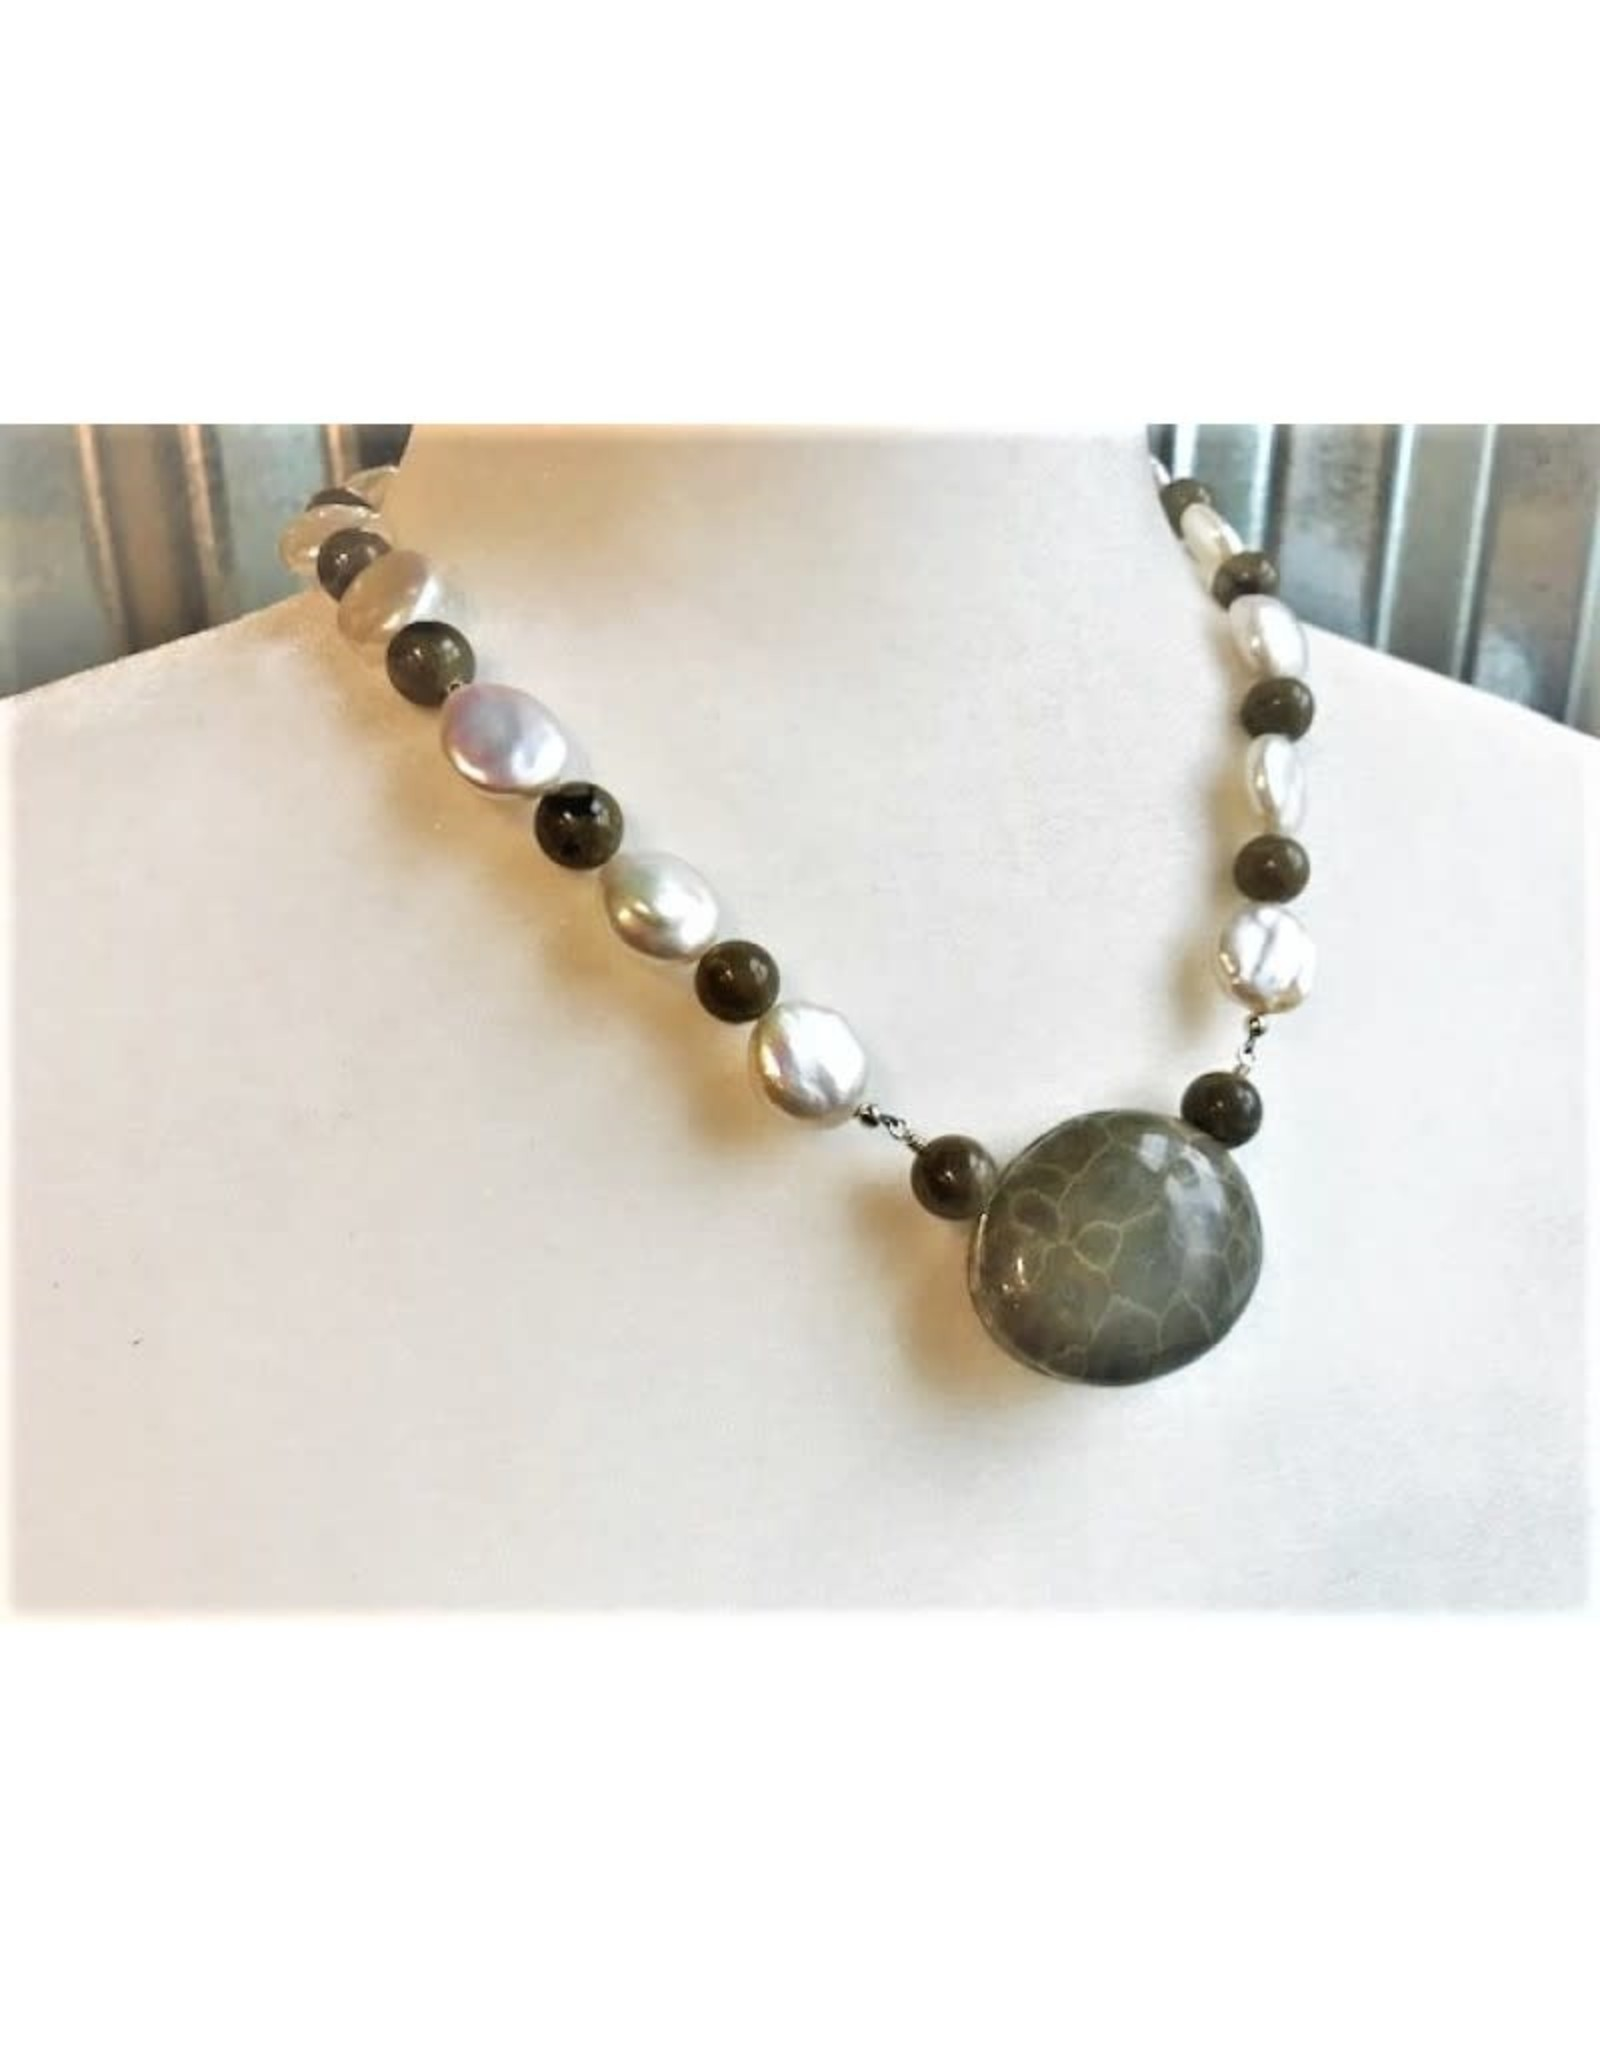 Necklace - Petoskey Stone & Freshwater Pearl